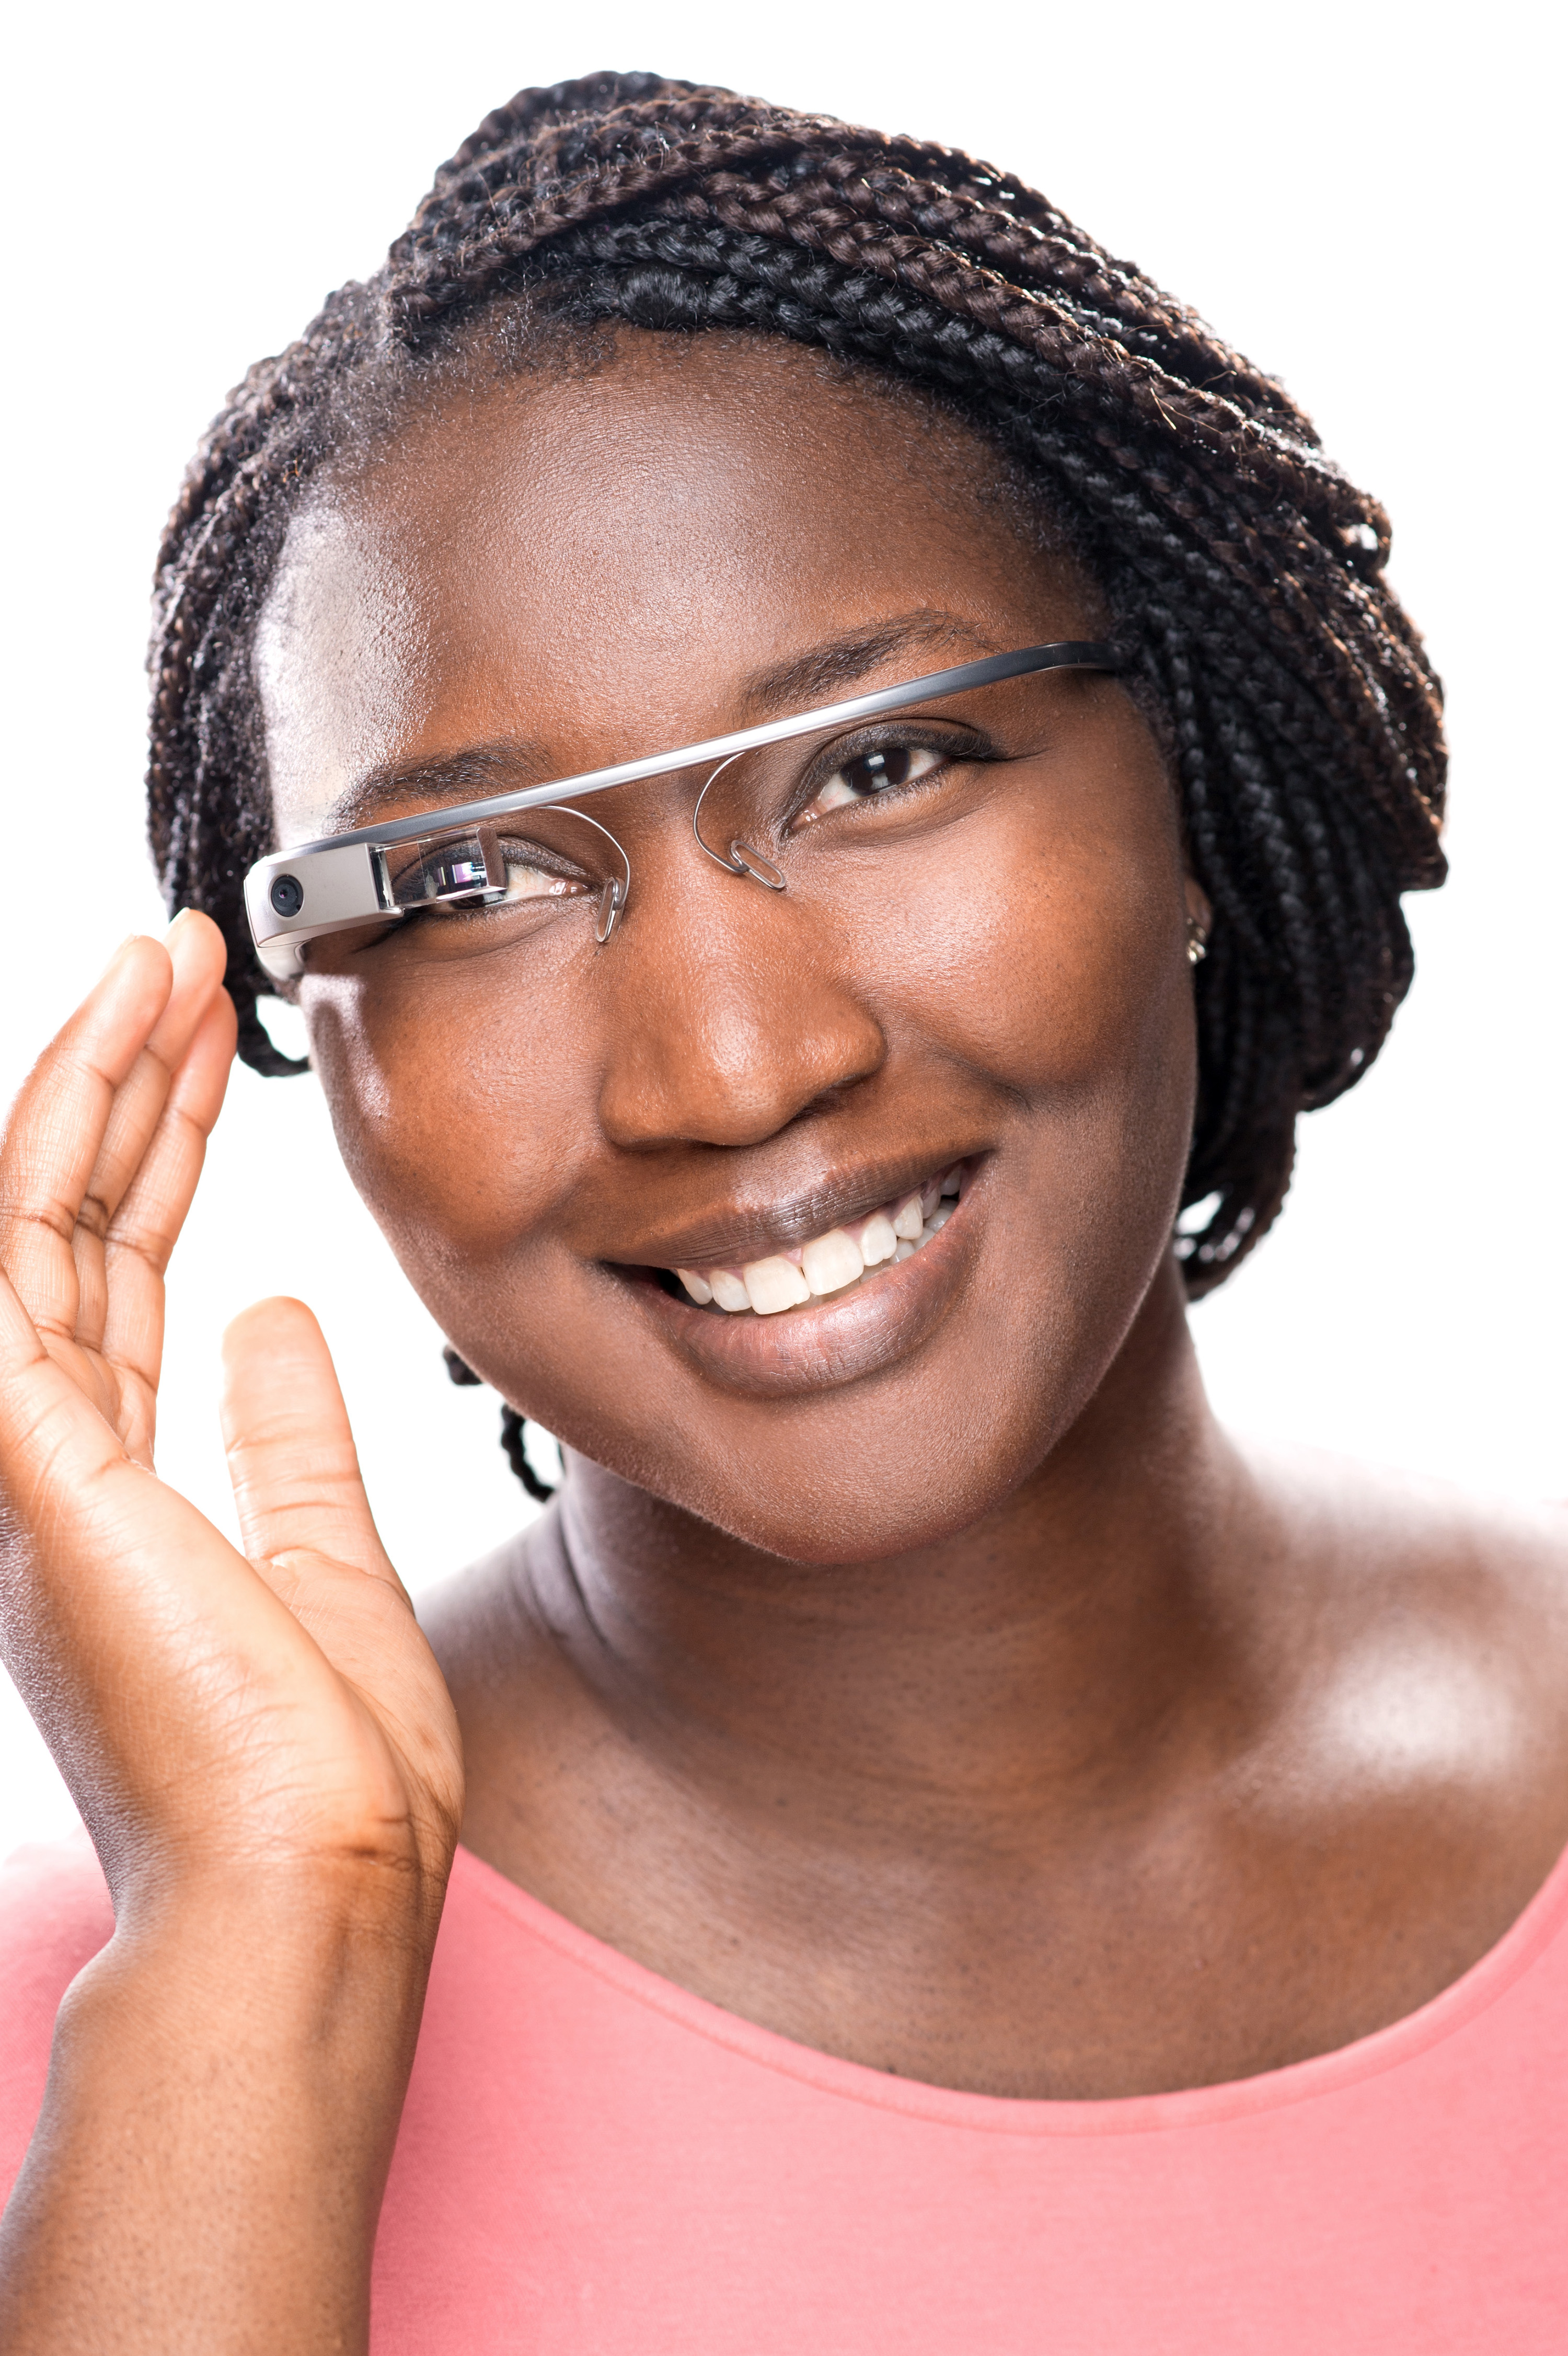 Doctoral student Femi Alabi is wearing Google Glass. As computer science celebrates its 50th anniversary, scientists are looking back over a half-century of high-tech changes. (photo by Steve Exum)